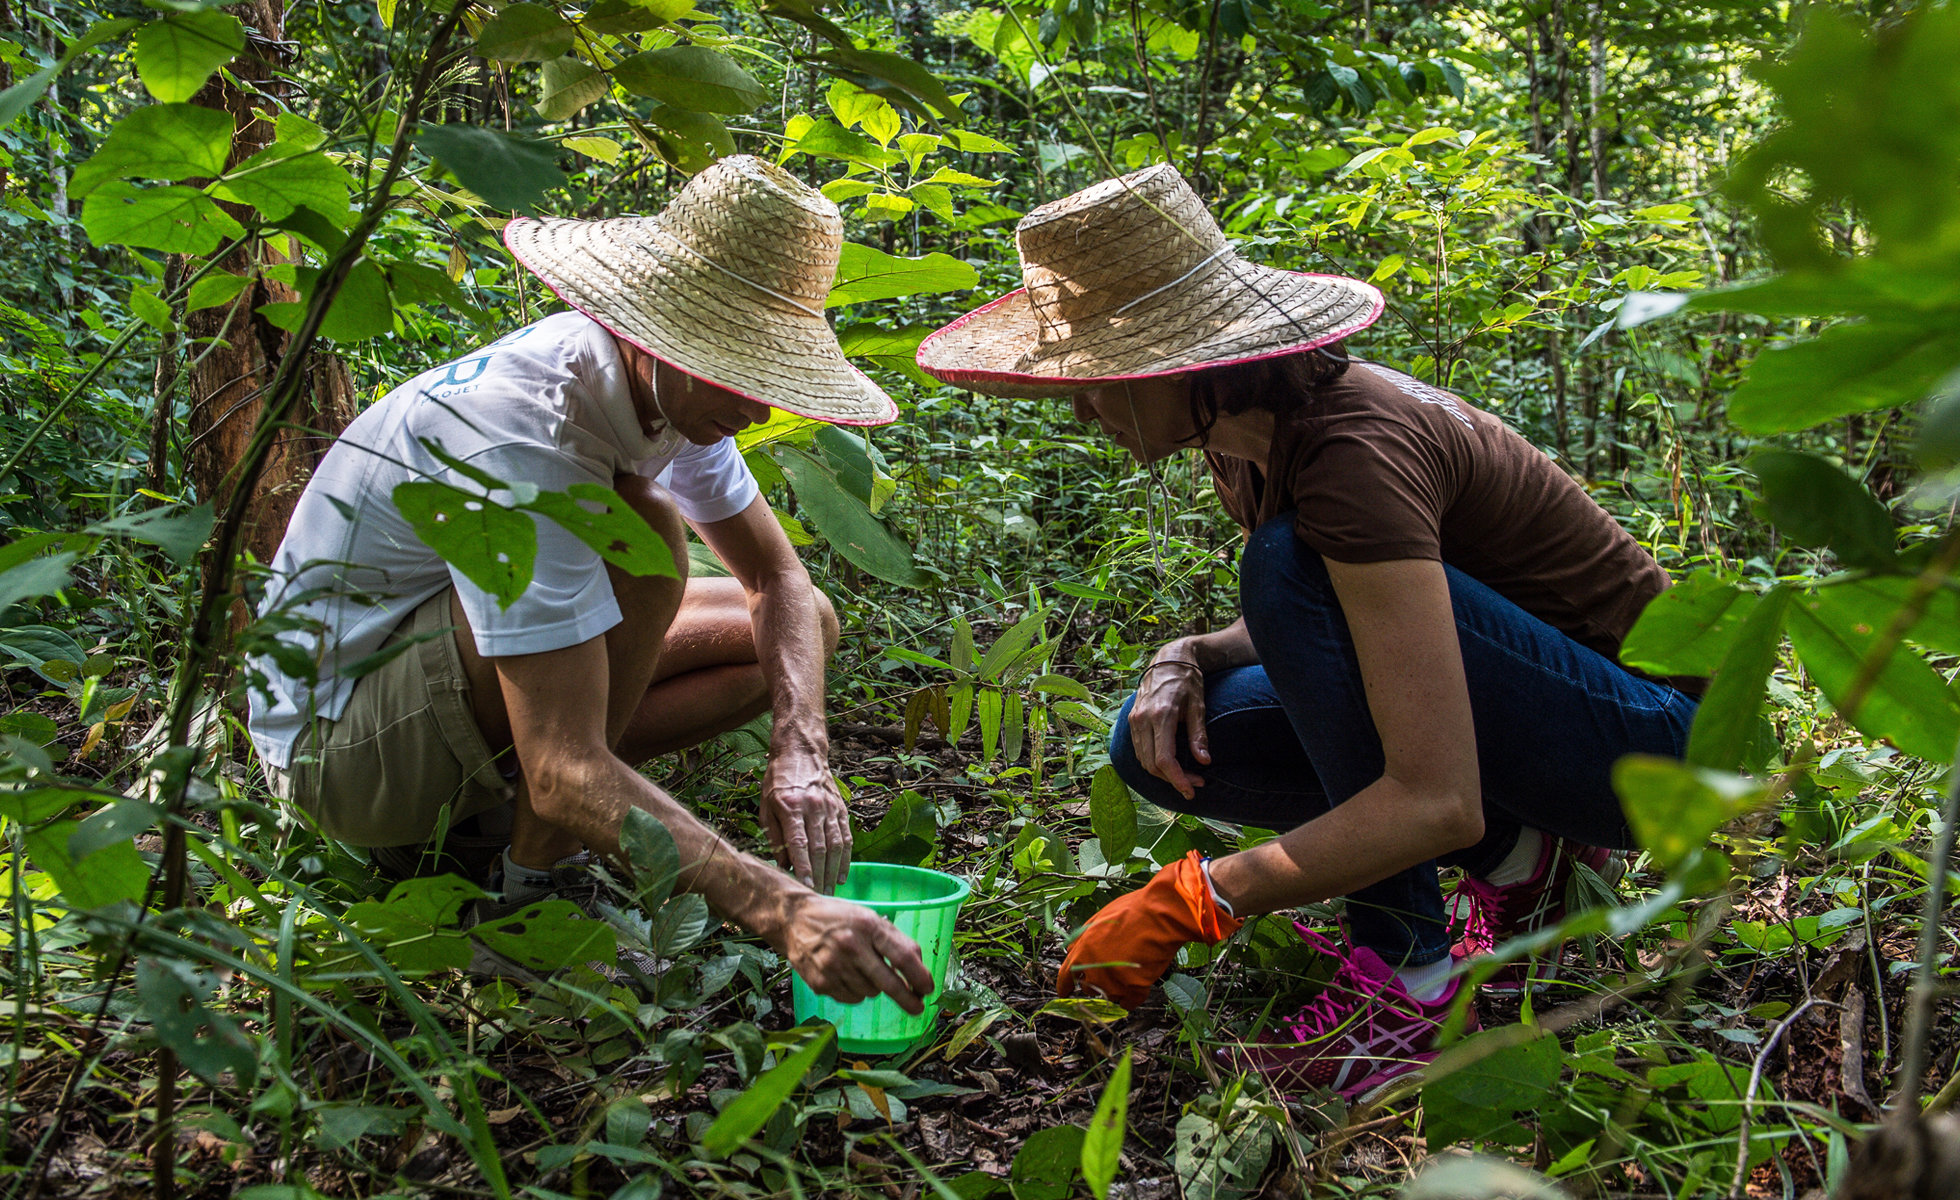 Photo: Caudalie founders Bertrand and Mathilde Thomas planting trees with the PUR Project in 2015.